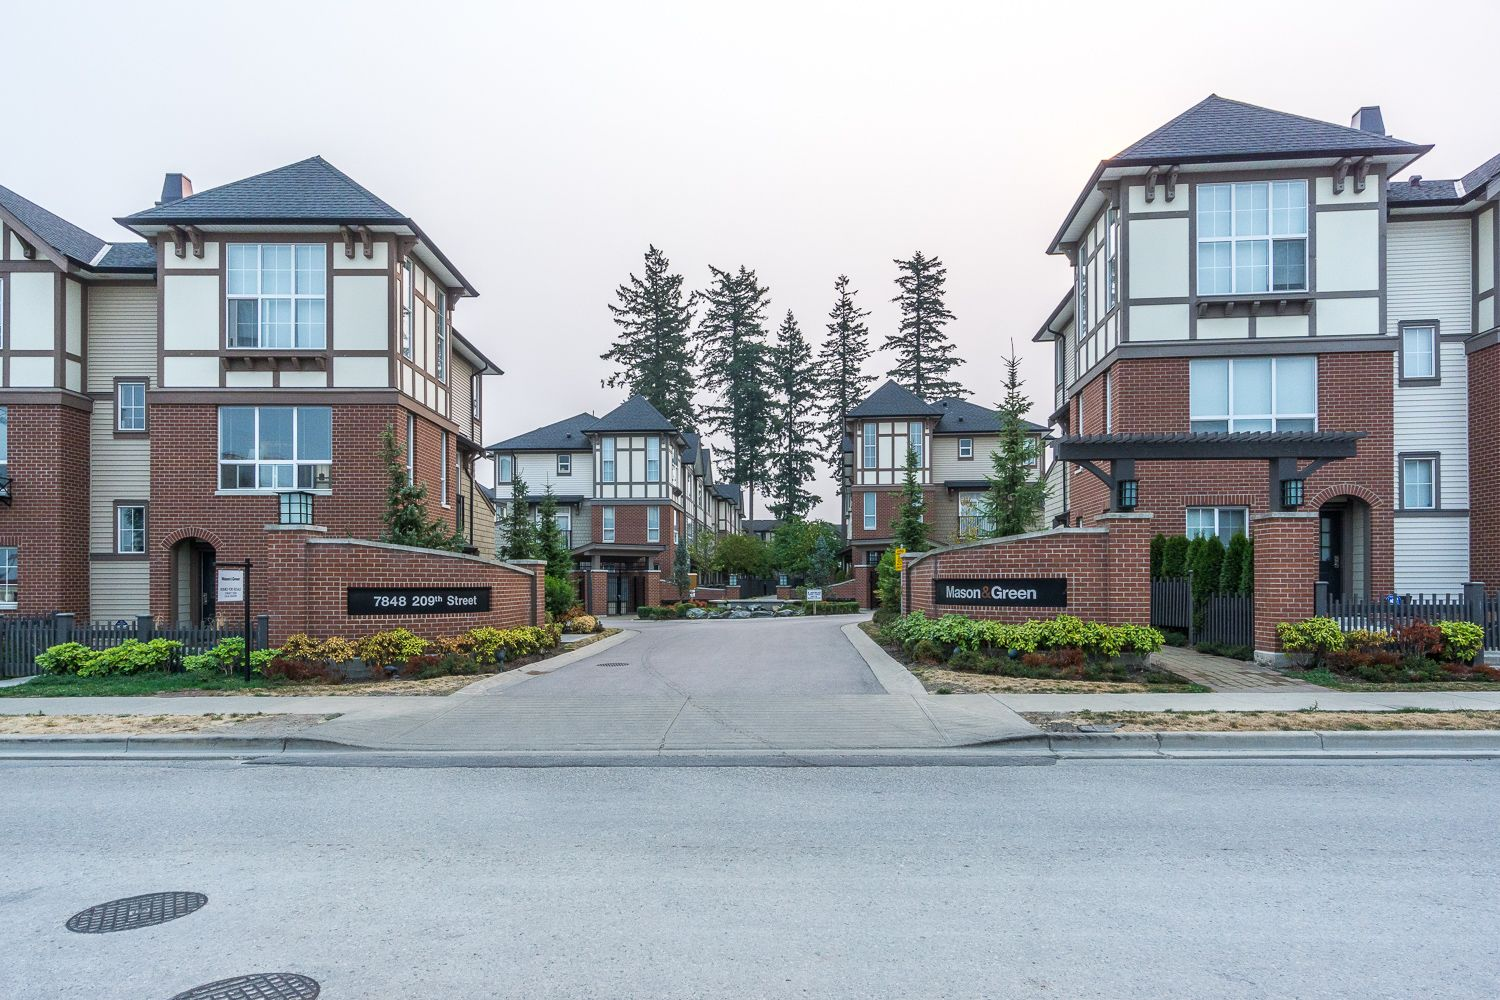 """Main Photo: 55 7848 209 Street in Langley: Willoughby Heights Townhouse for sale in """"Mason & Green"""" : MLS®# R2235766"""